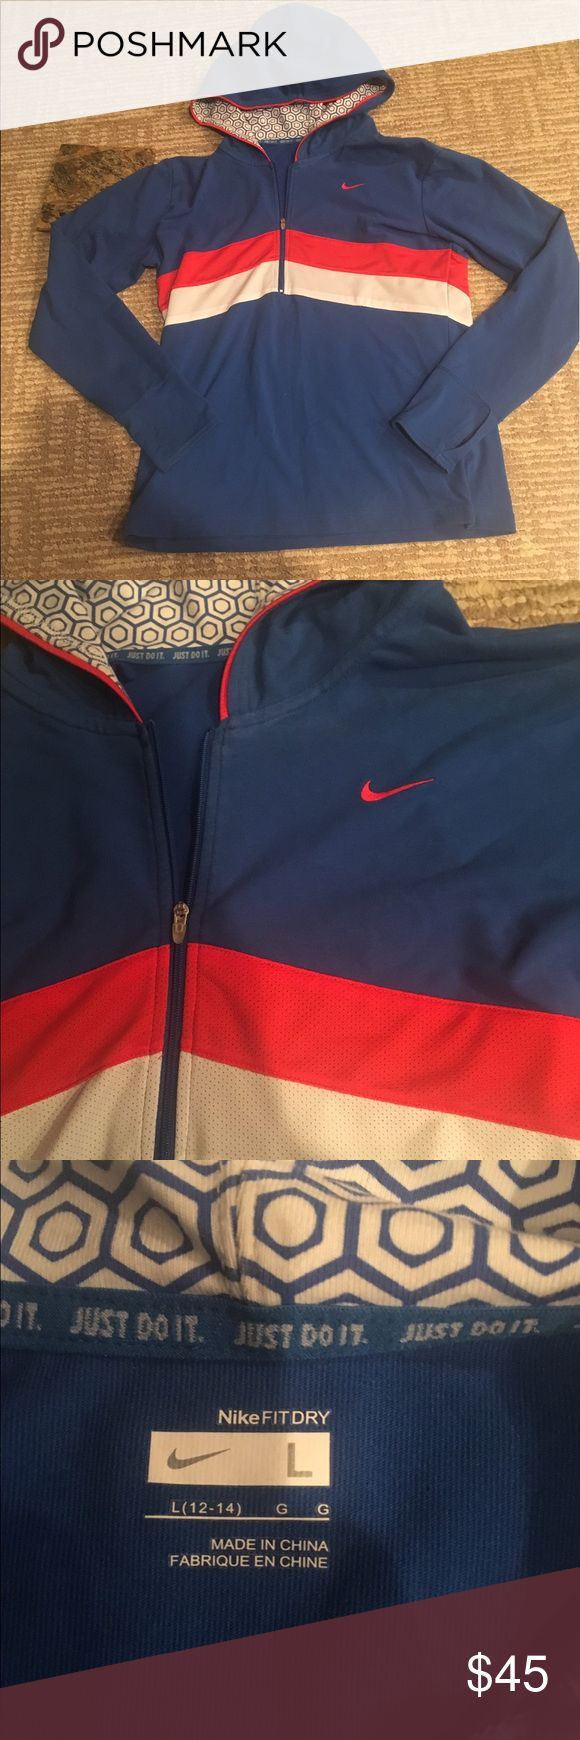 NIKE HOODIE FULL ZIP UP BLUE WHITE SWOOSH FIT DRY Pre loved perfect condition  Nike fit dry zip up hoodie with white and orange  stripes and orange logo has thumb holes on the sleeves is super comfy and cute! Fast shipping Nike Tops Sweatshirts & Hoodies